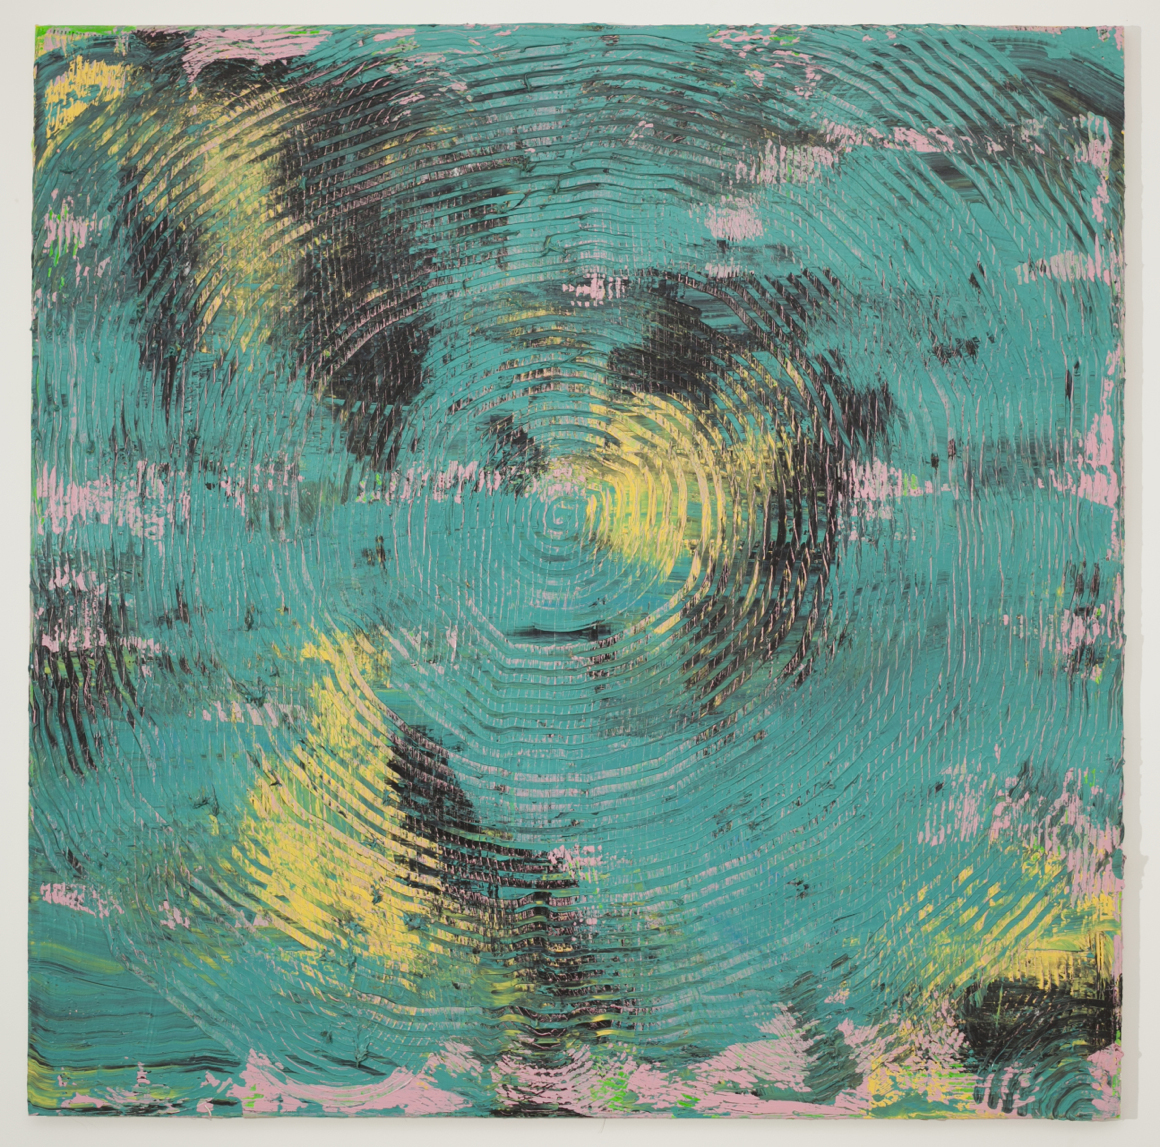 "<p><span class=""name"">Adam Bateman</span><br><em>Teal</em><span class='media'>acrylic and spray paint on canvas</span>72 x 72 in (182.9 x 182.9 cm)<br>2014<br></p>"